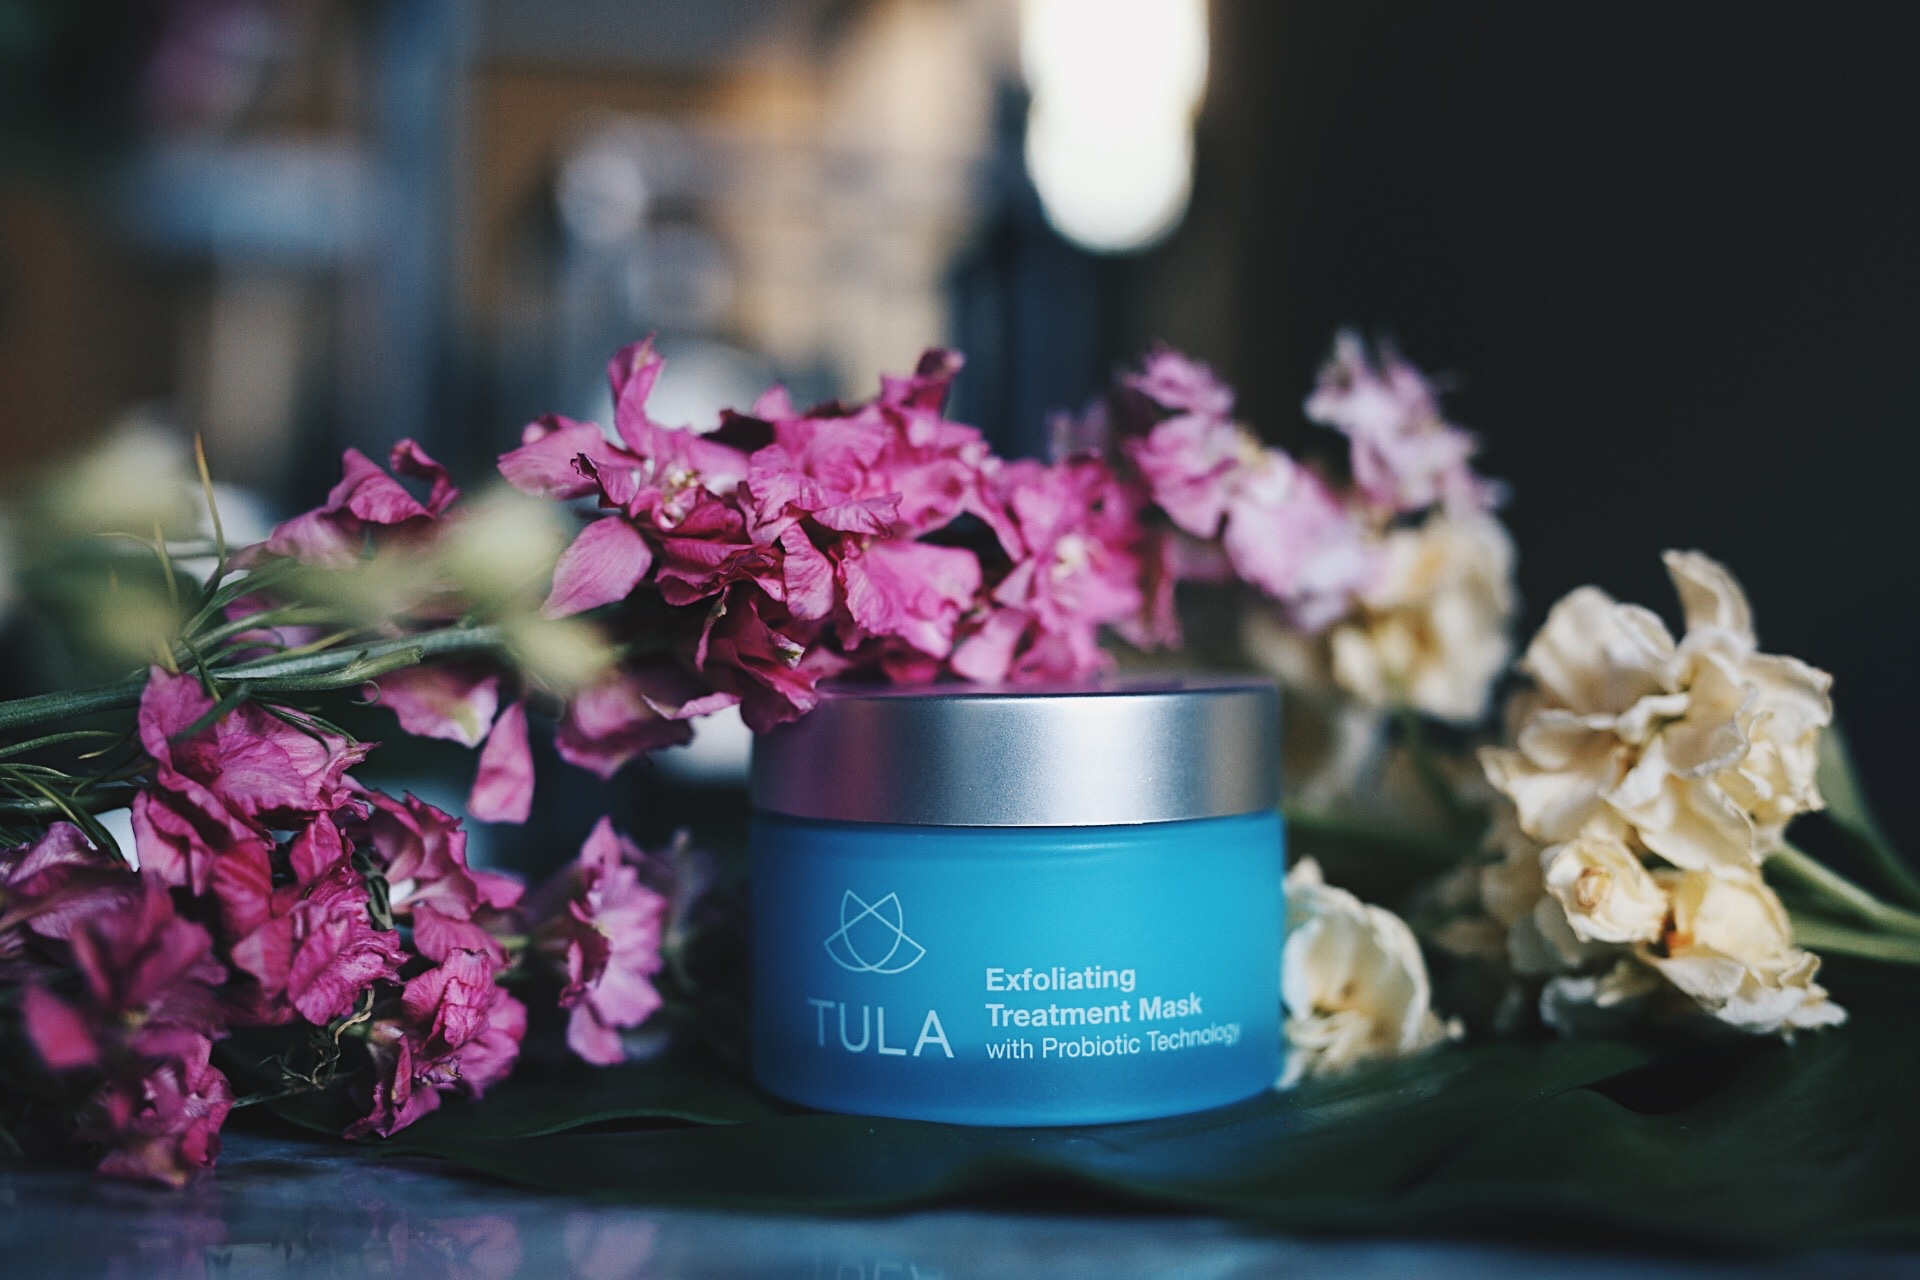 Austin blogger DTKAustin shares why healthy skincare is so important at any age with TULA | best skincare products | skincare products for any age | skincare routines | how to use skincare products | TULA skincare review | TULA skincare products || Dressed to Kill